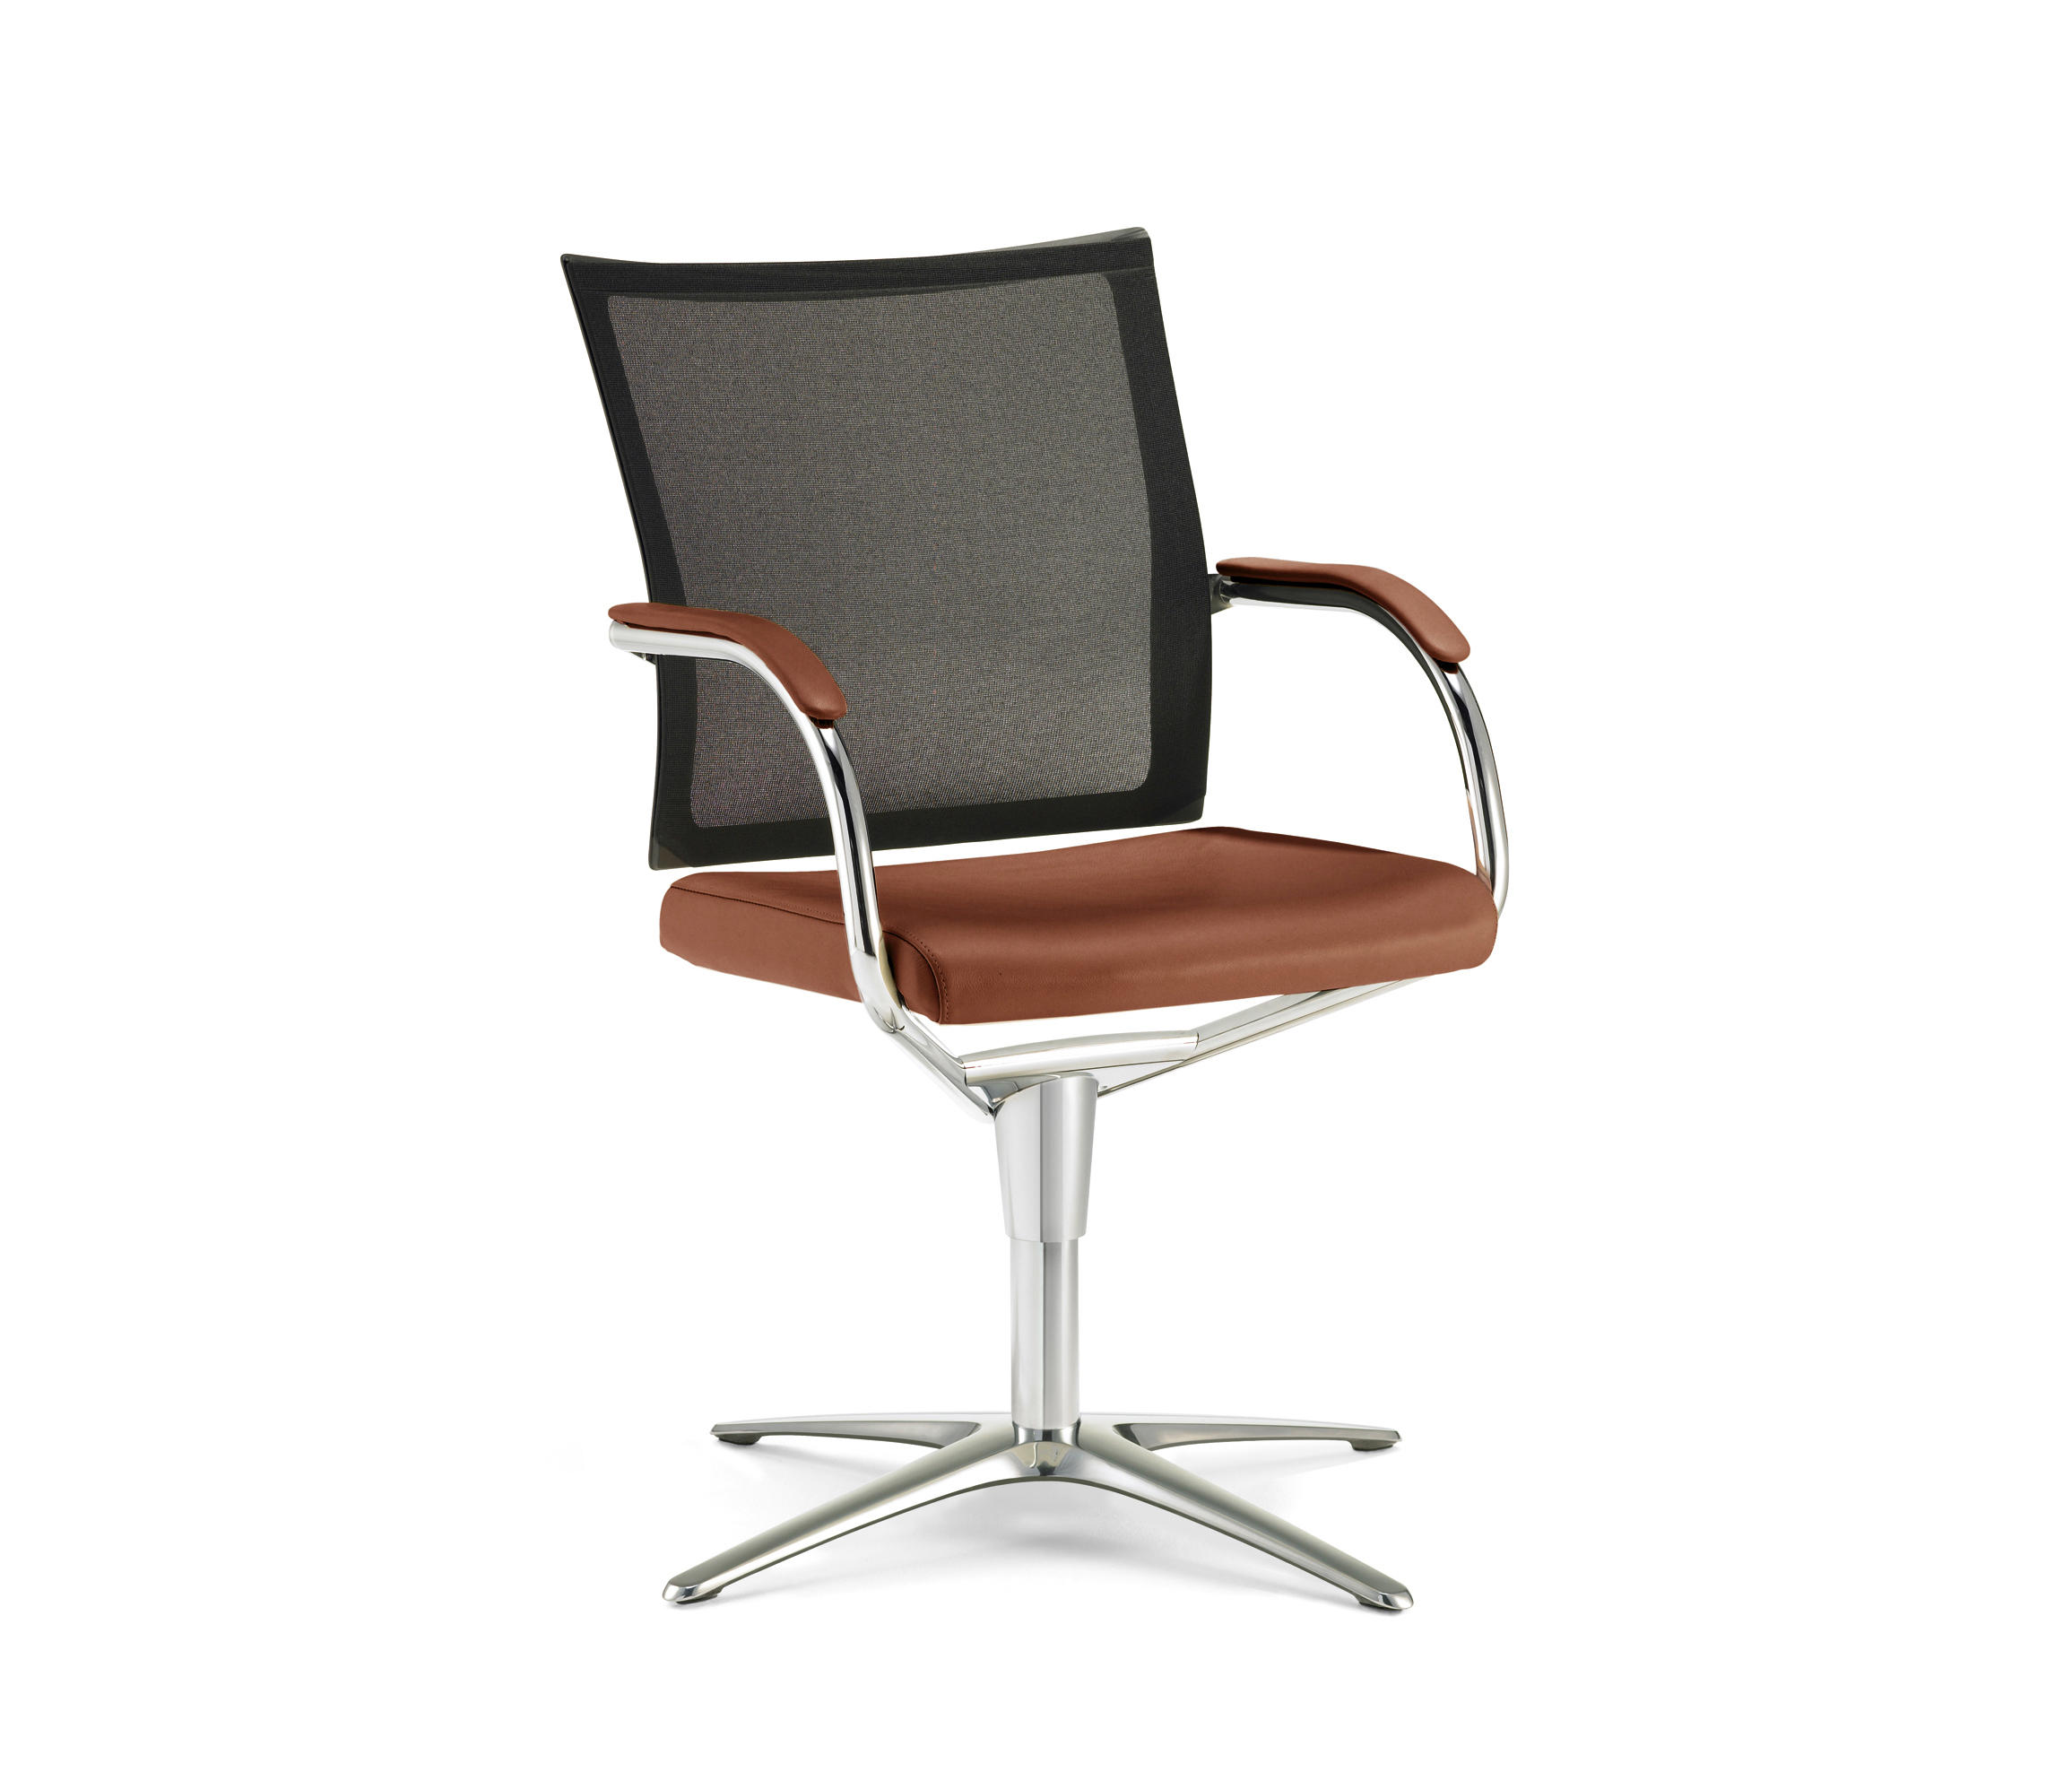 Orbit Network Conference Swivel Chair By Klöber | Chairs